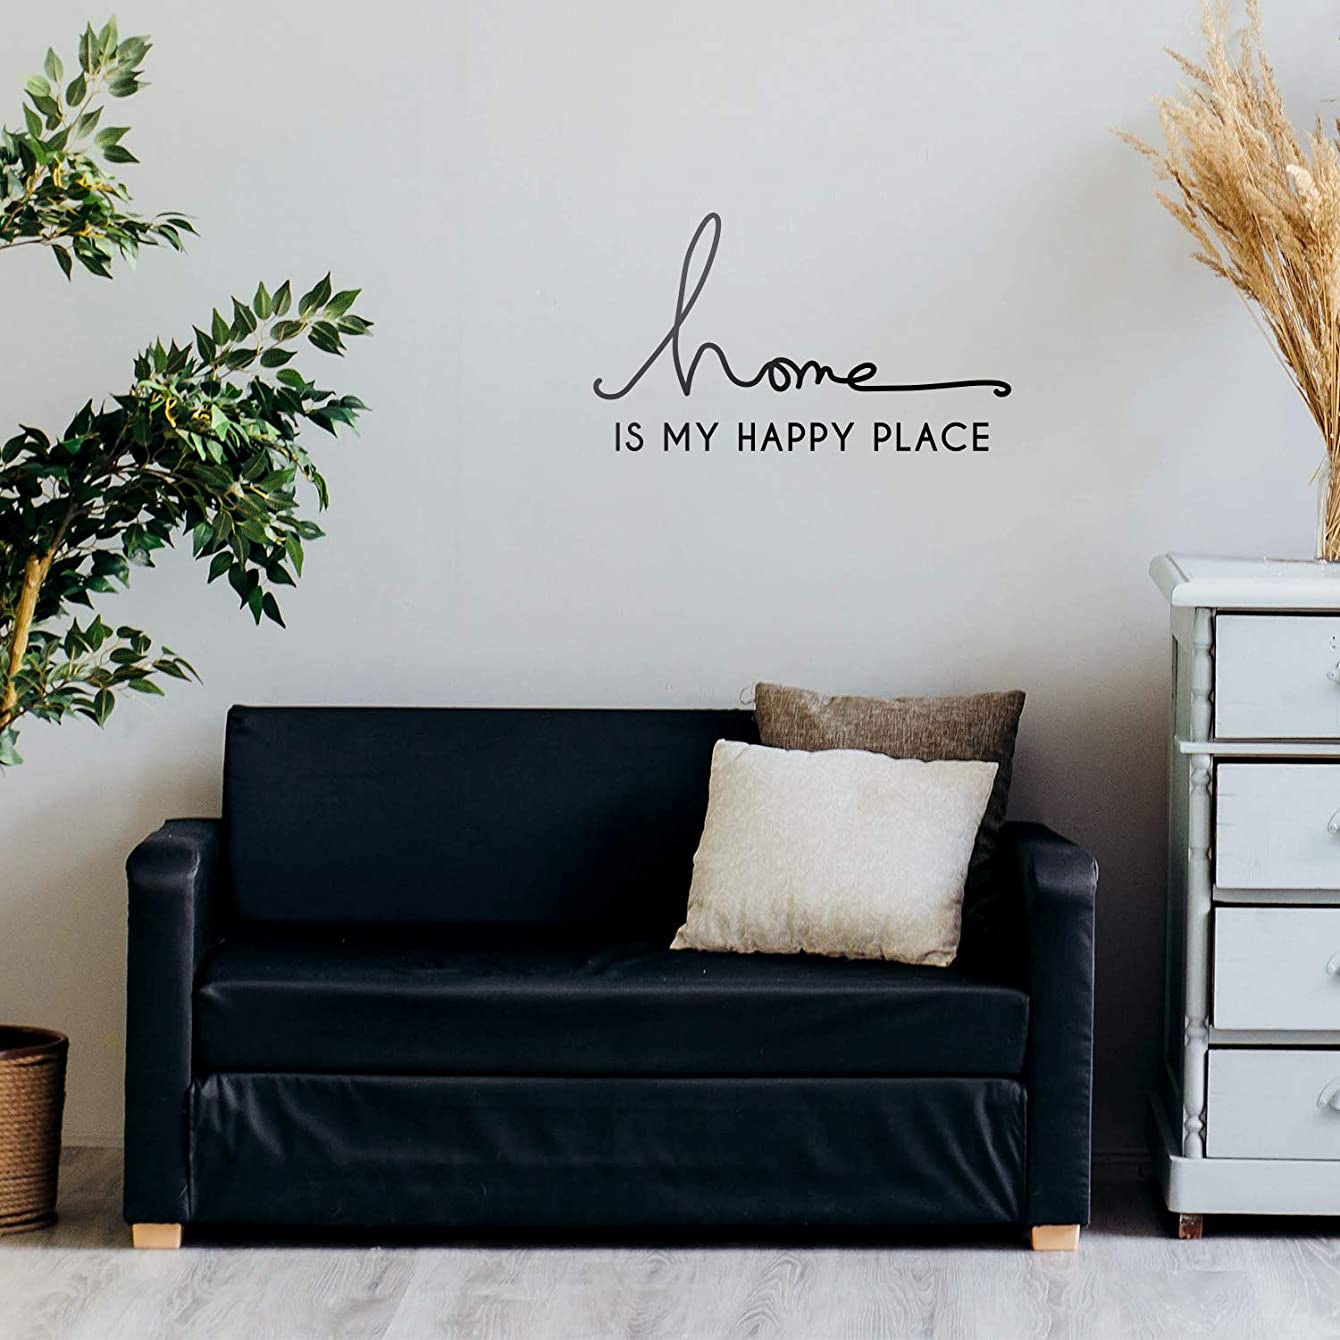 Vinyl Wall Art Decal - Home is My Happy Place - 12